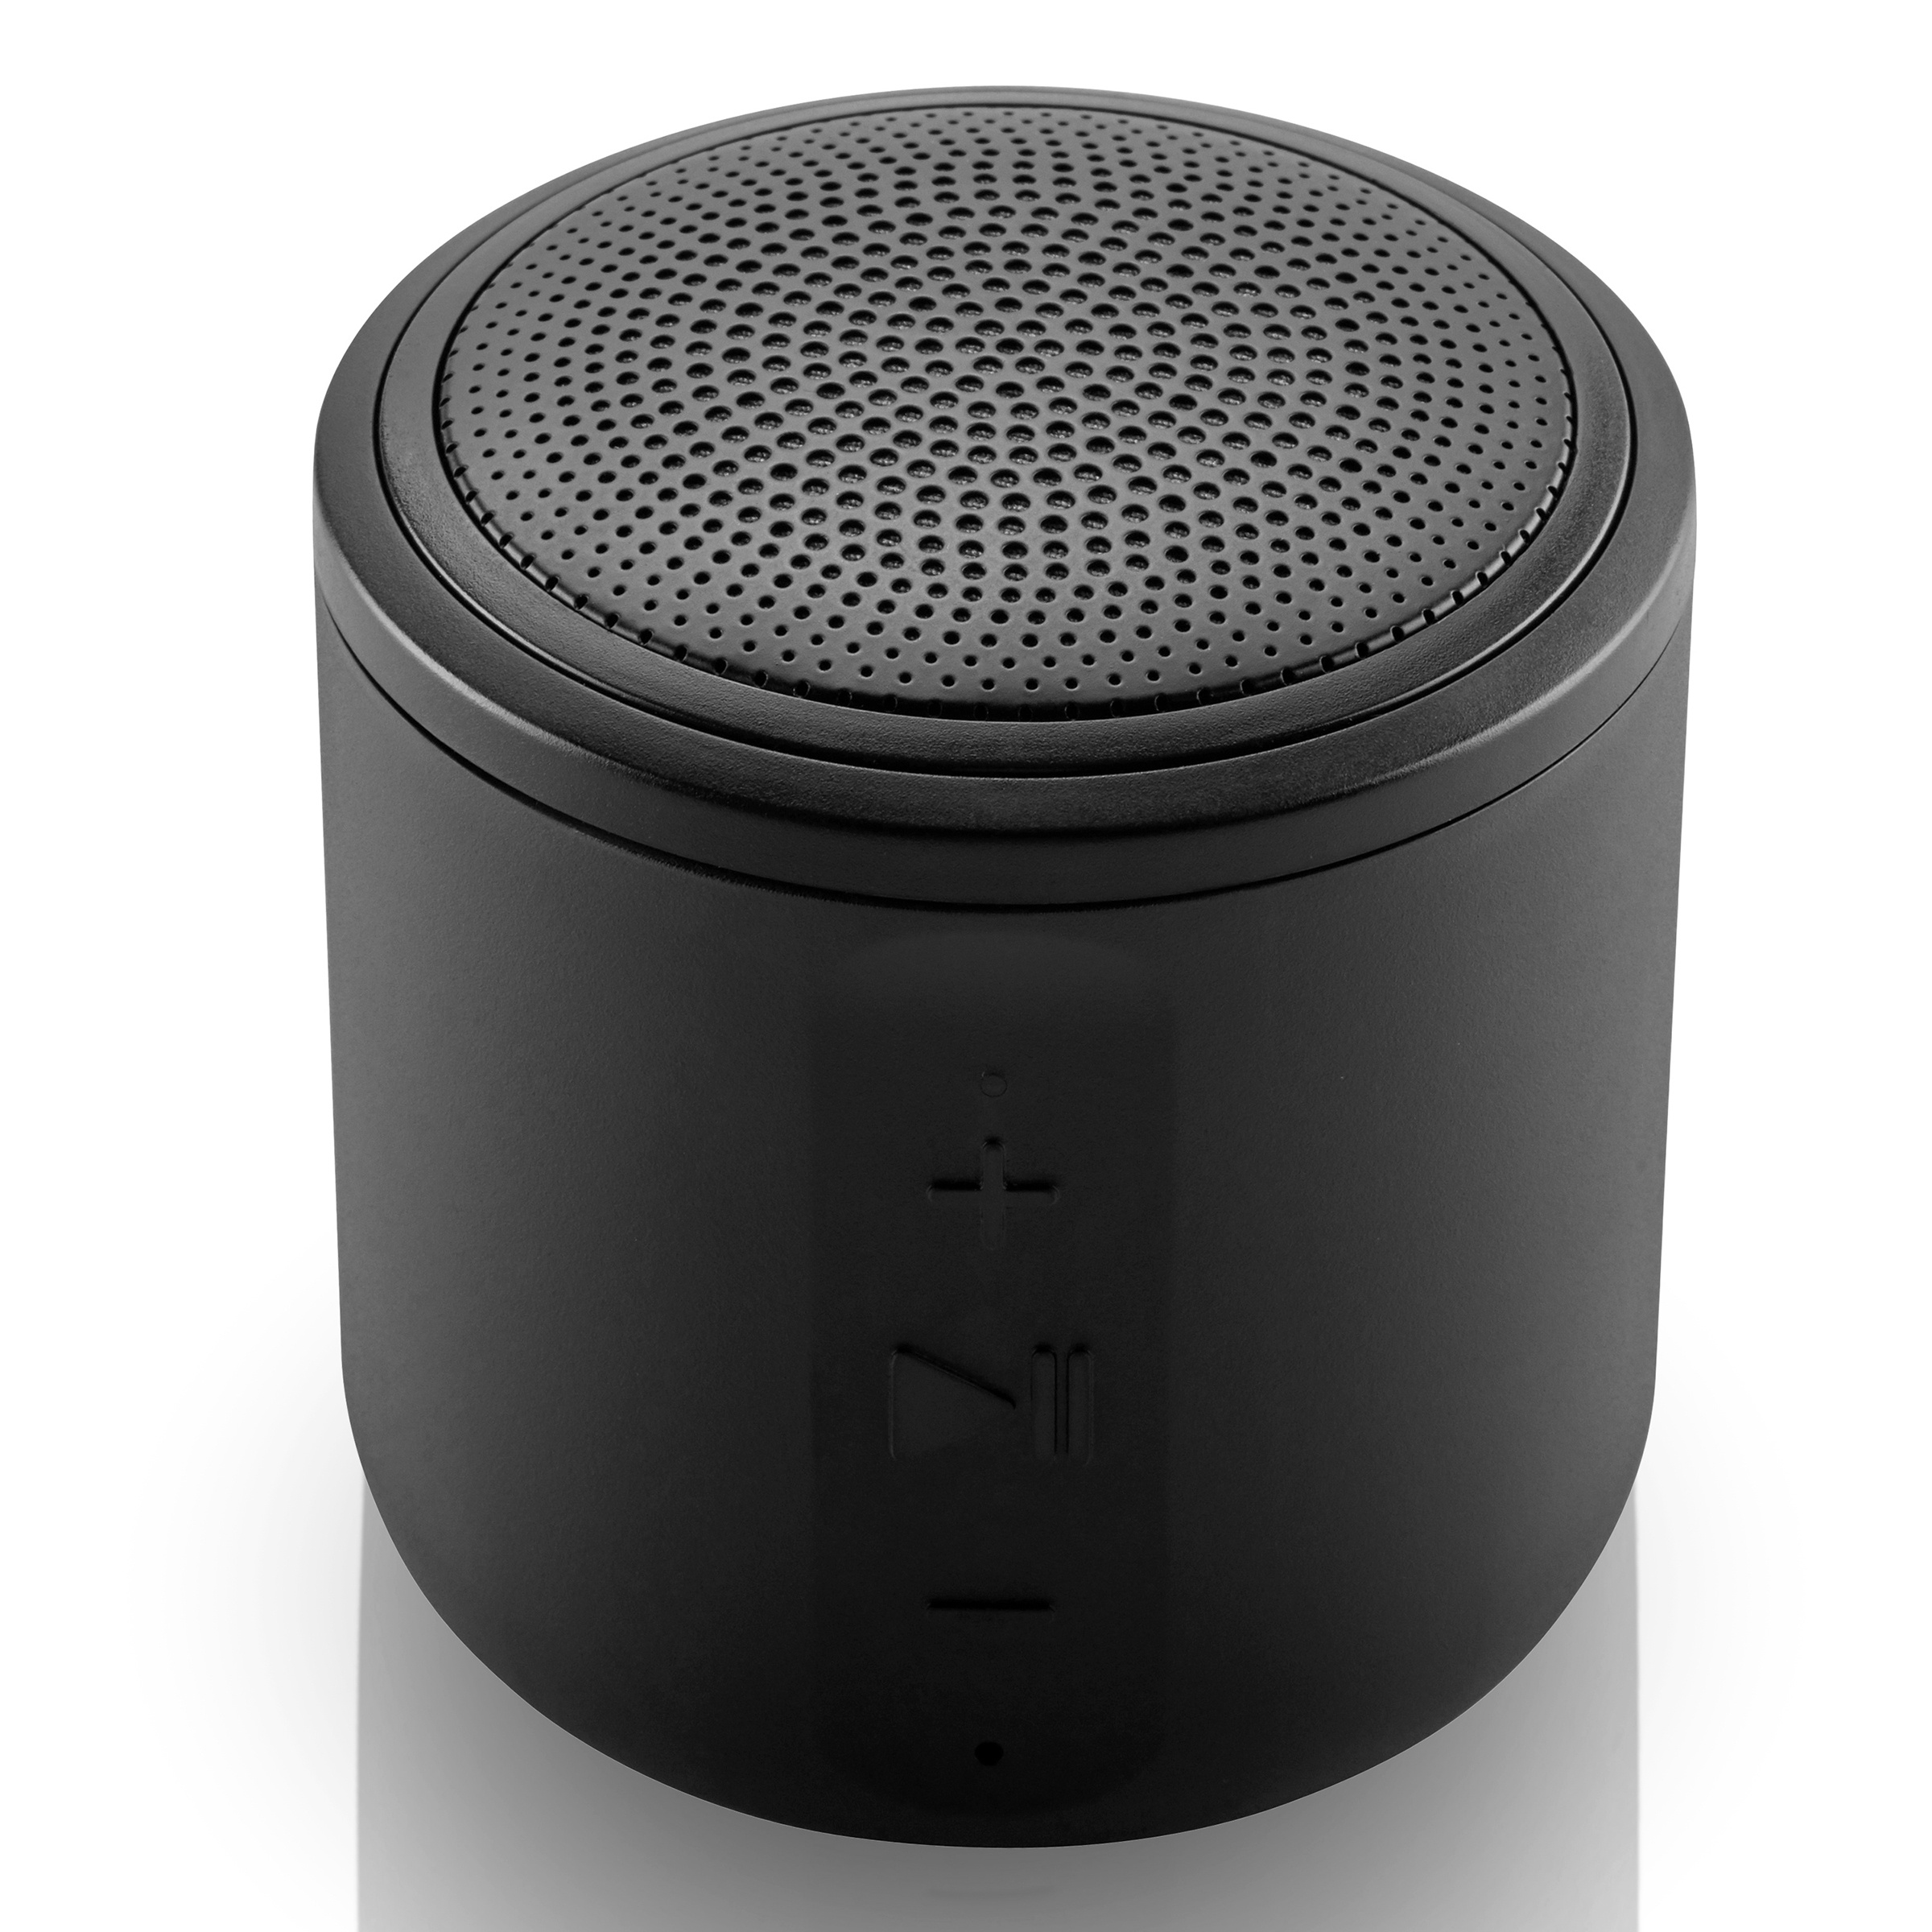 Blackweb™ Bluetooth Speaker, Built-In Microphone and Micro-USB